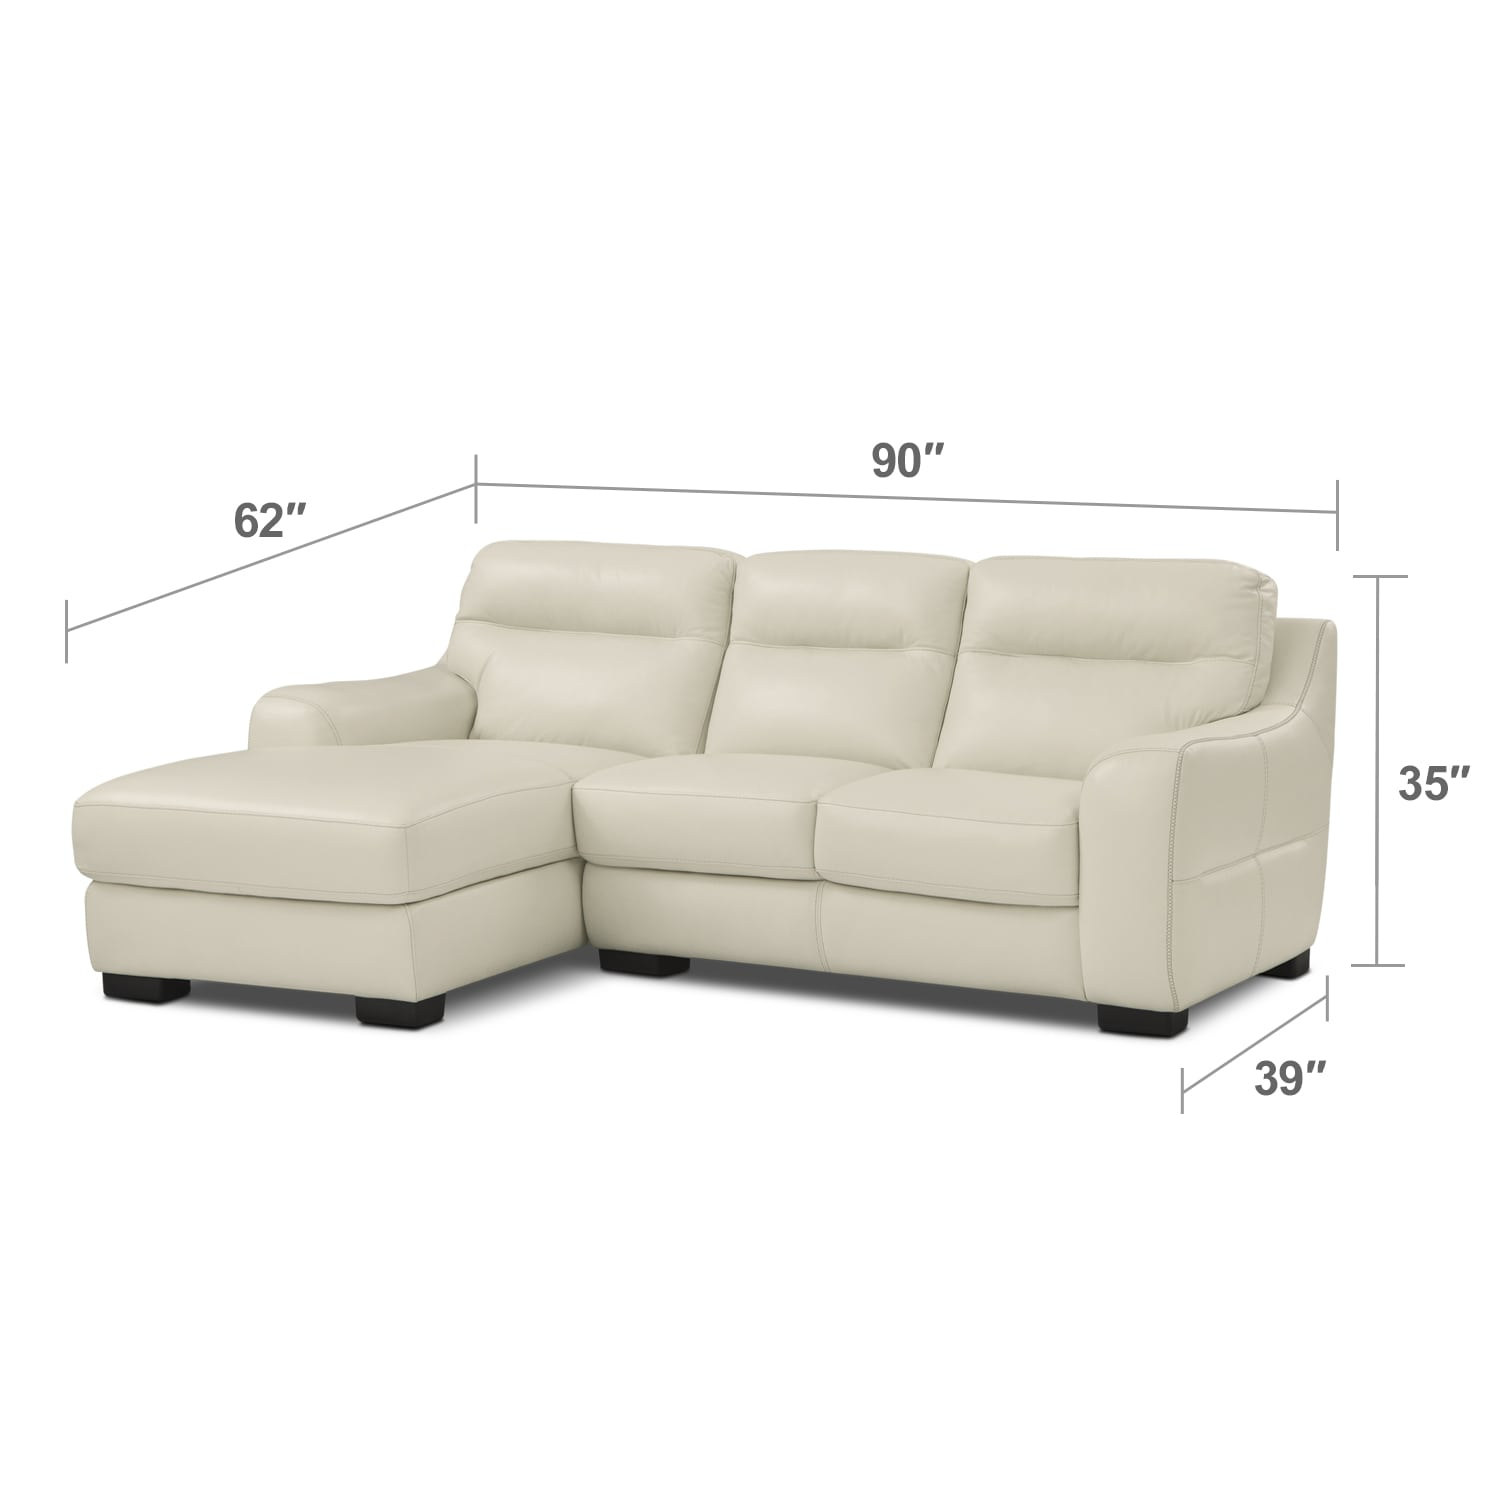 Living Room Furniture - Rocco 2-Piece Sectional with Left-Facing Chaise - Snow